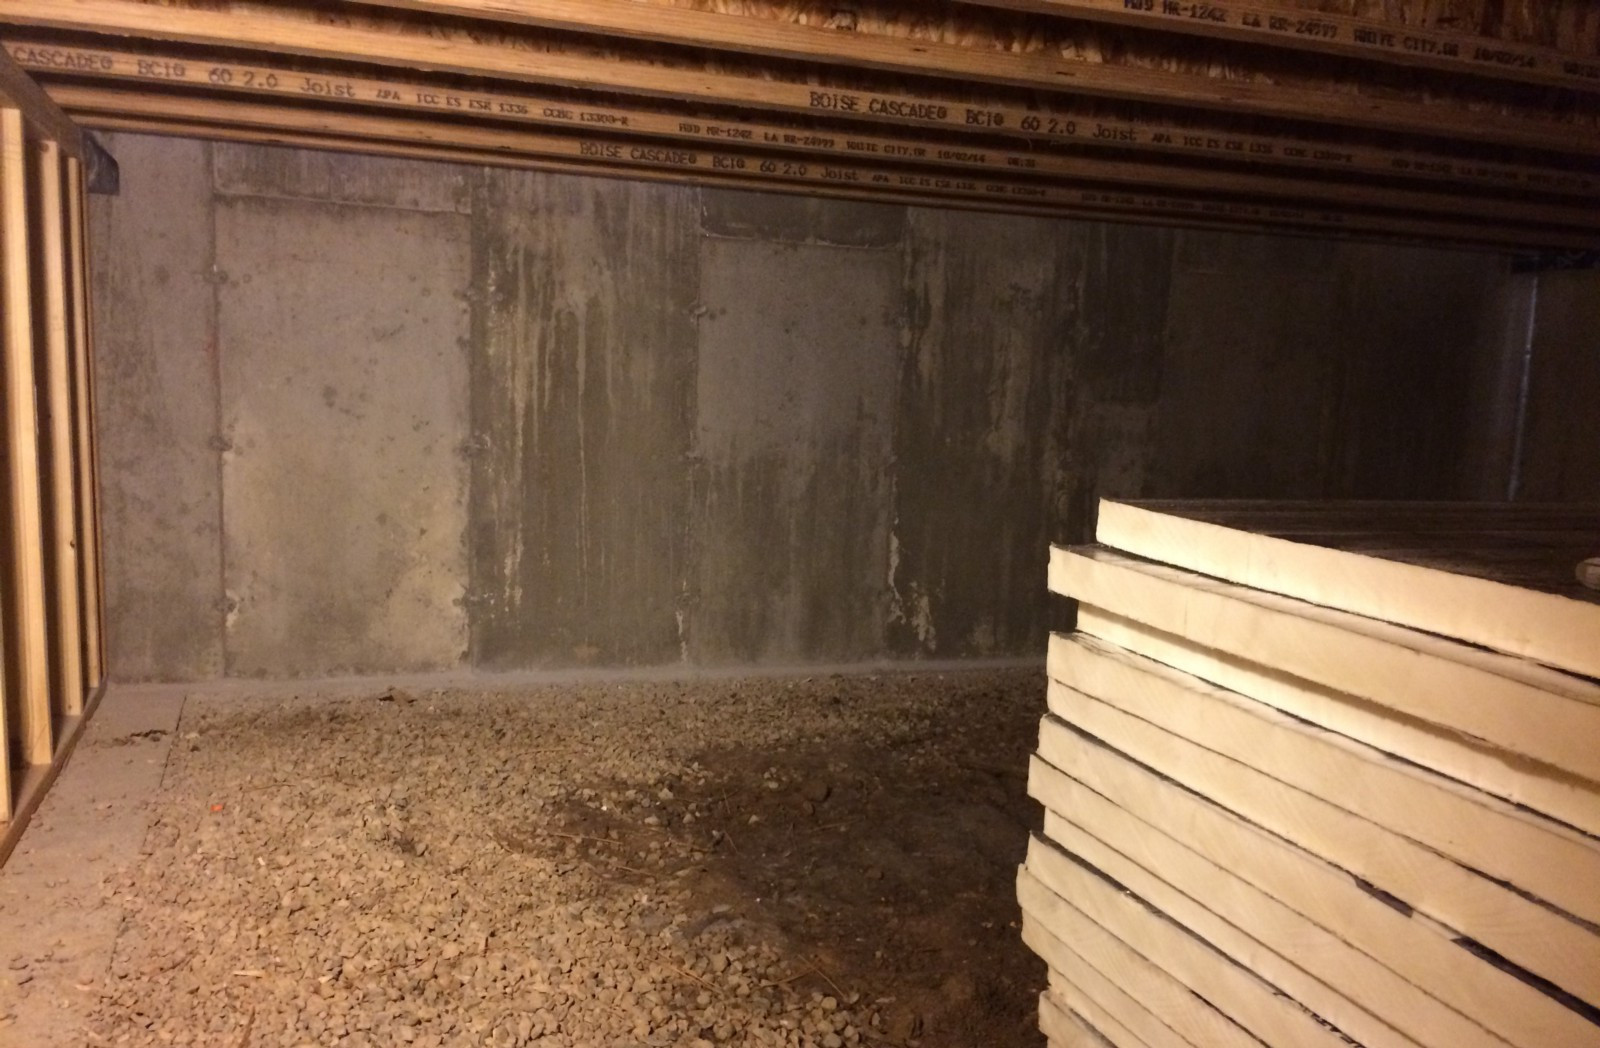 how much cost to install hardwood floor of crawlin the walls rides and rivers within i volunteered to insulate the crawl space to save a bit on labor costs and be able to contribute to the building process at least in some small way